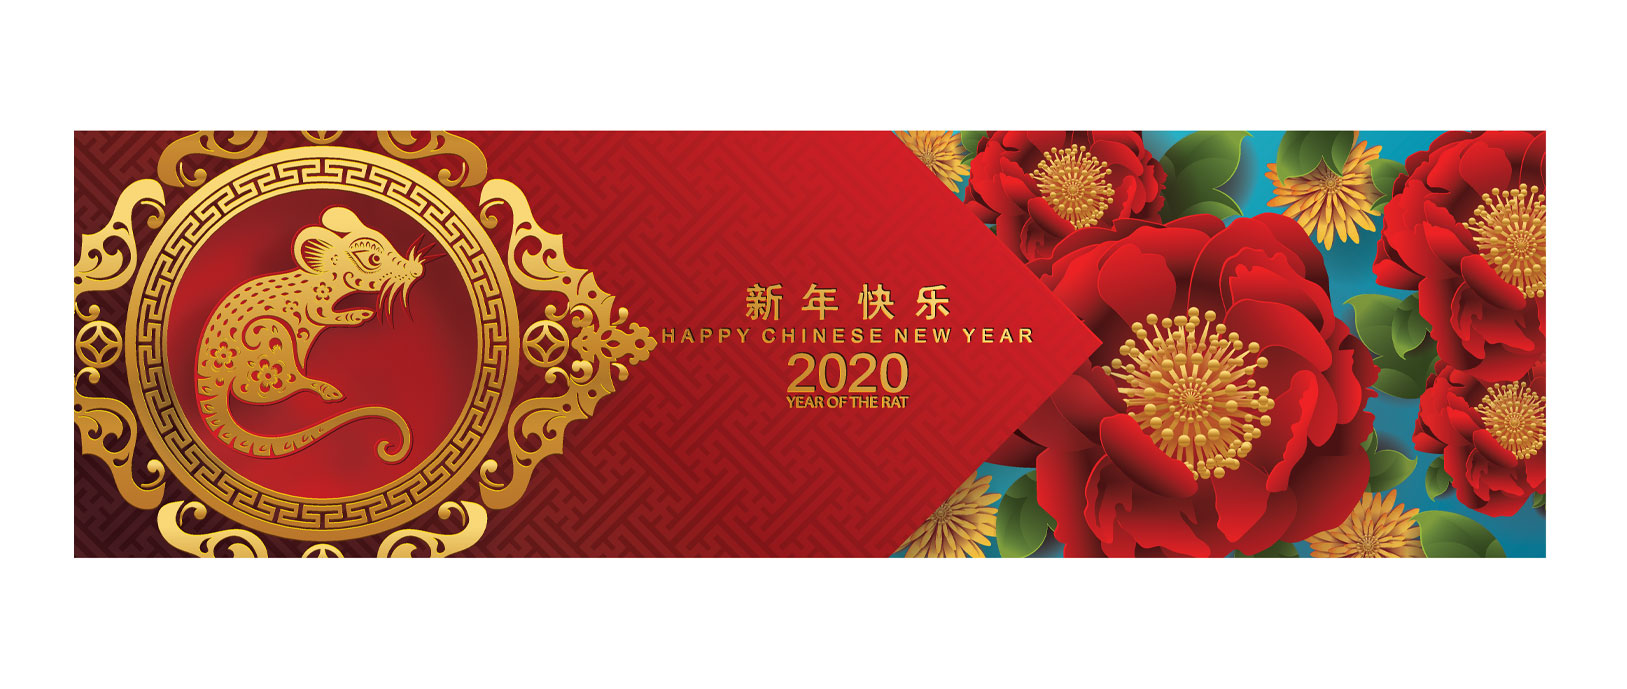 Happy Chinese New Year! 2020 